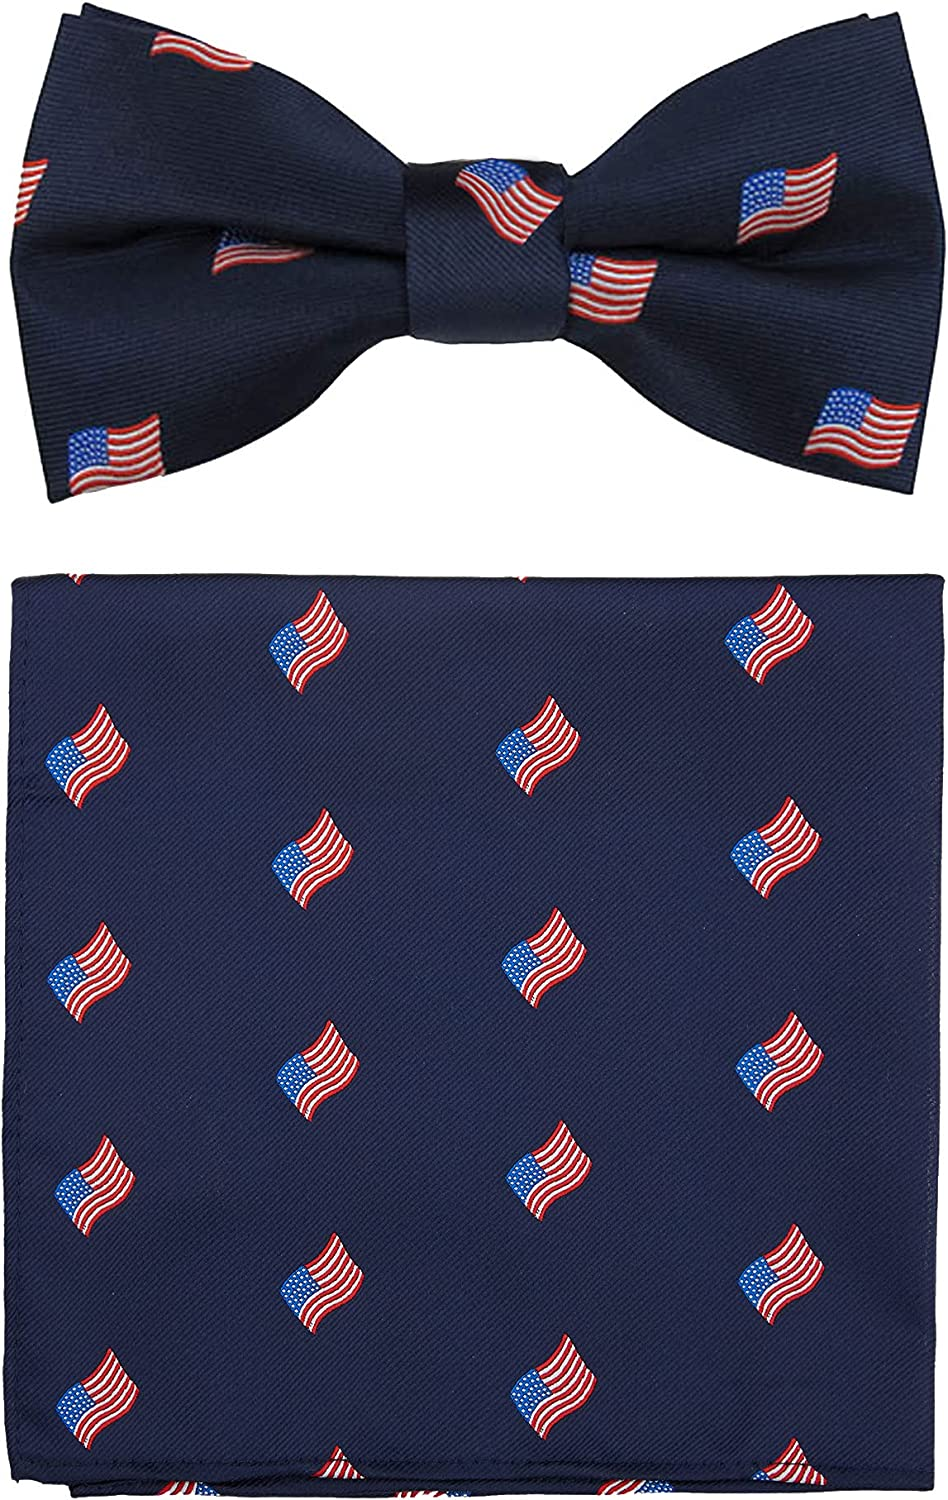 Jacob Alexander Men's Woven American Flags USA Navy Pre-Tied Clip-On Bow Tie and Pocket Square Set